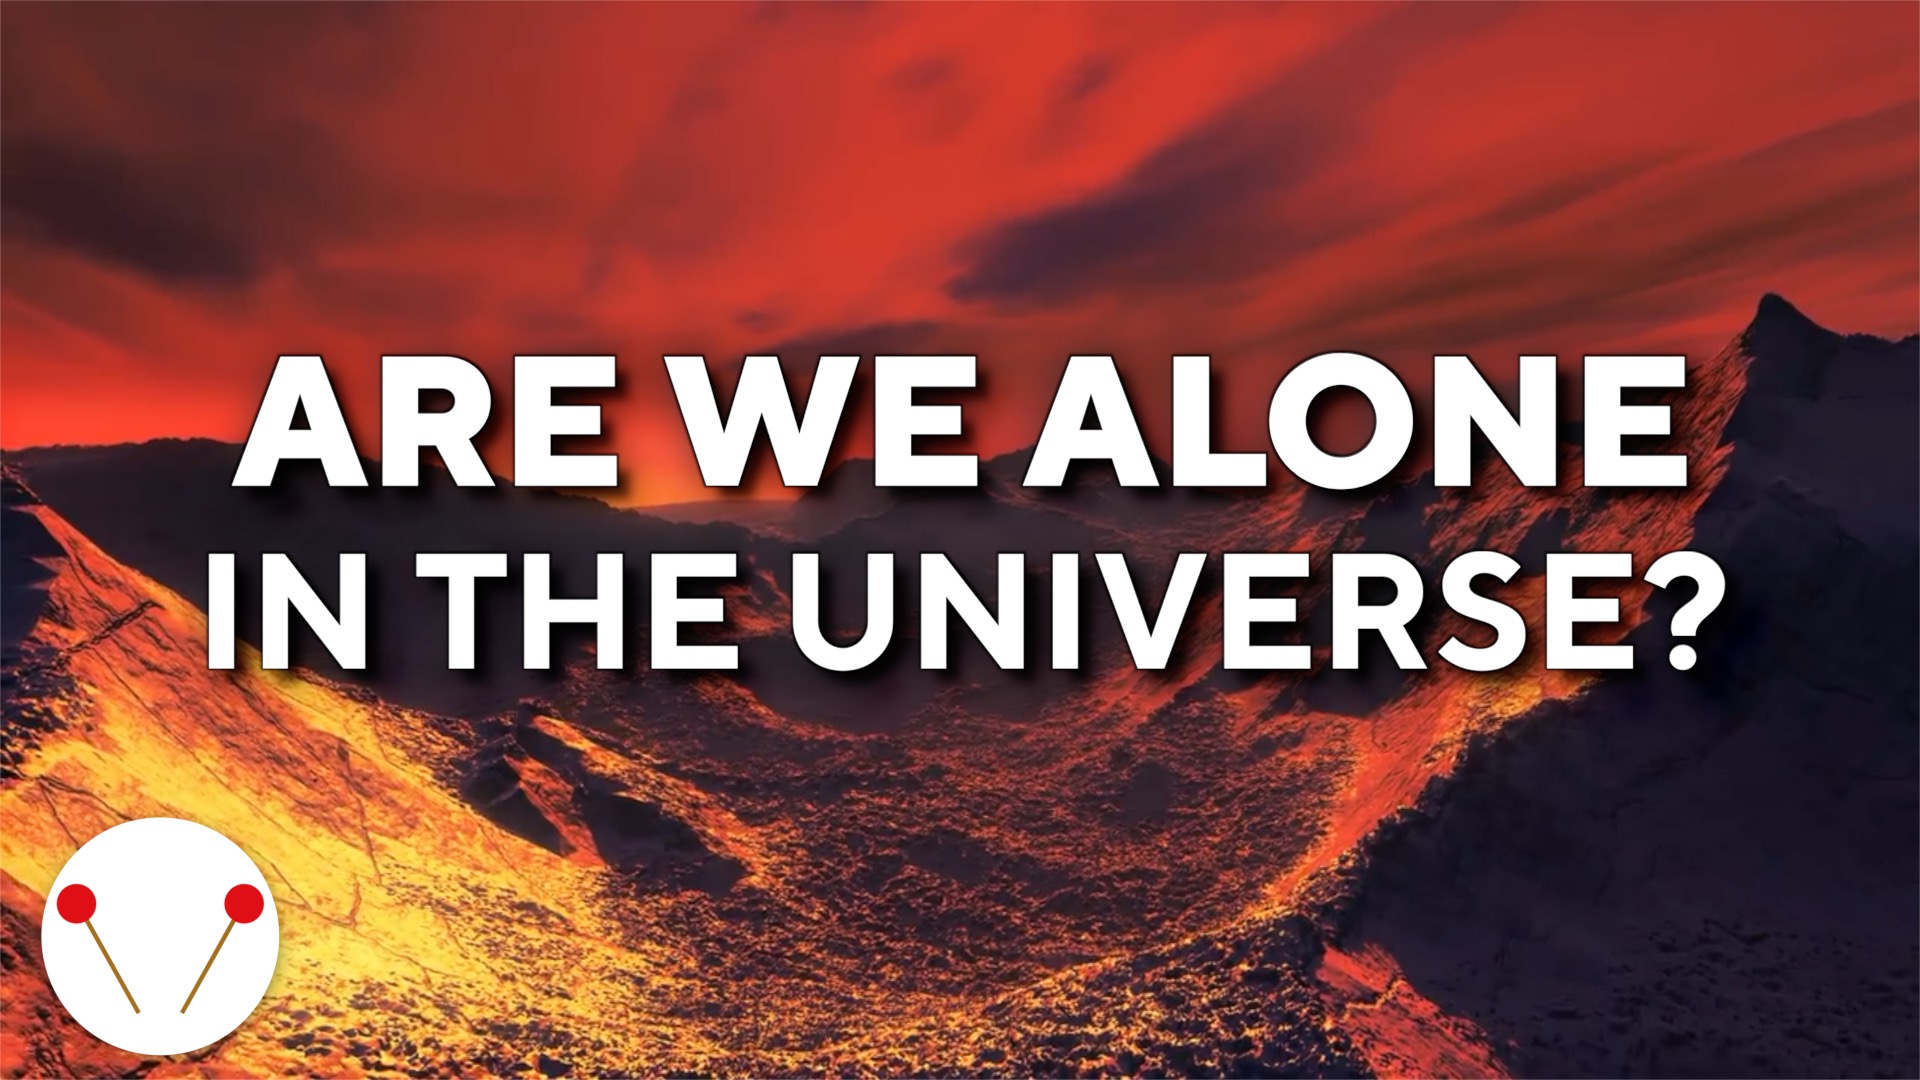 3 Reasons We May Be Alone In The Universe